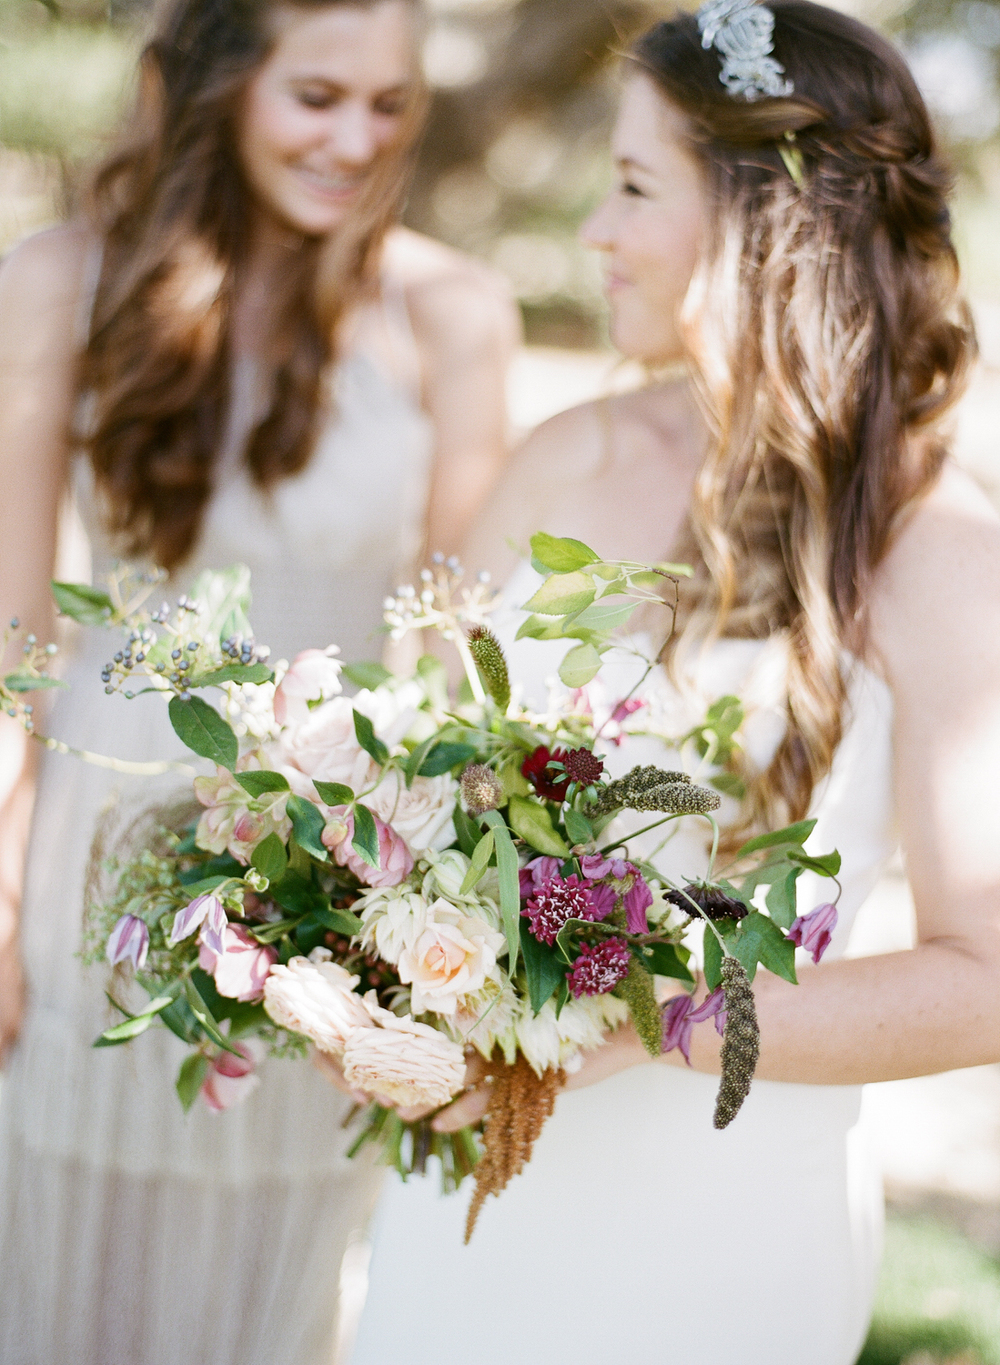 Tali's earthy, wild bouquet features a variety of florals all spilling out of her hands in a cascade; photo by Sylvie Gil